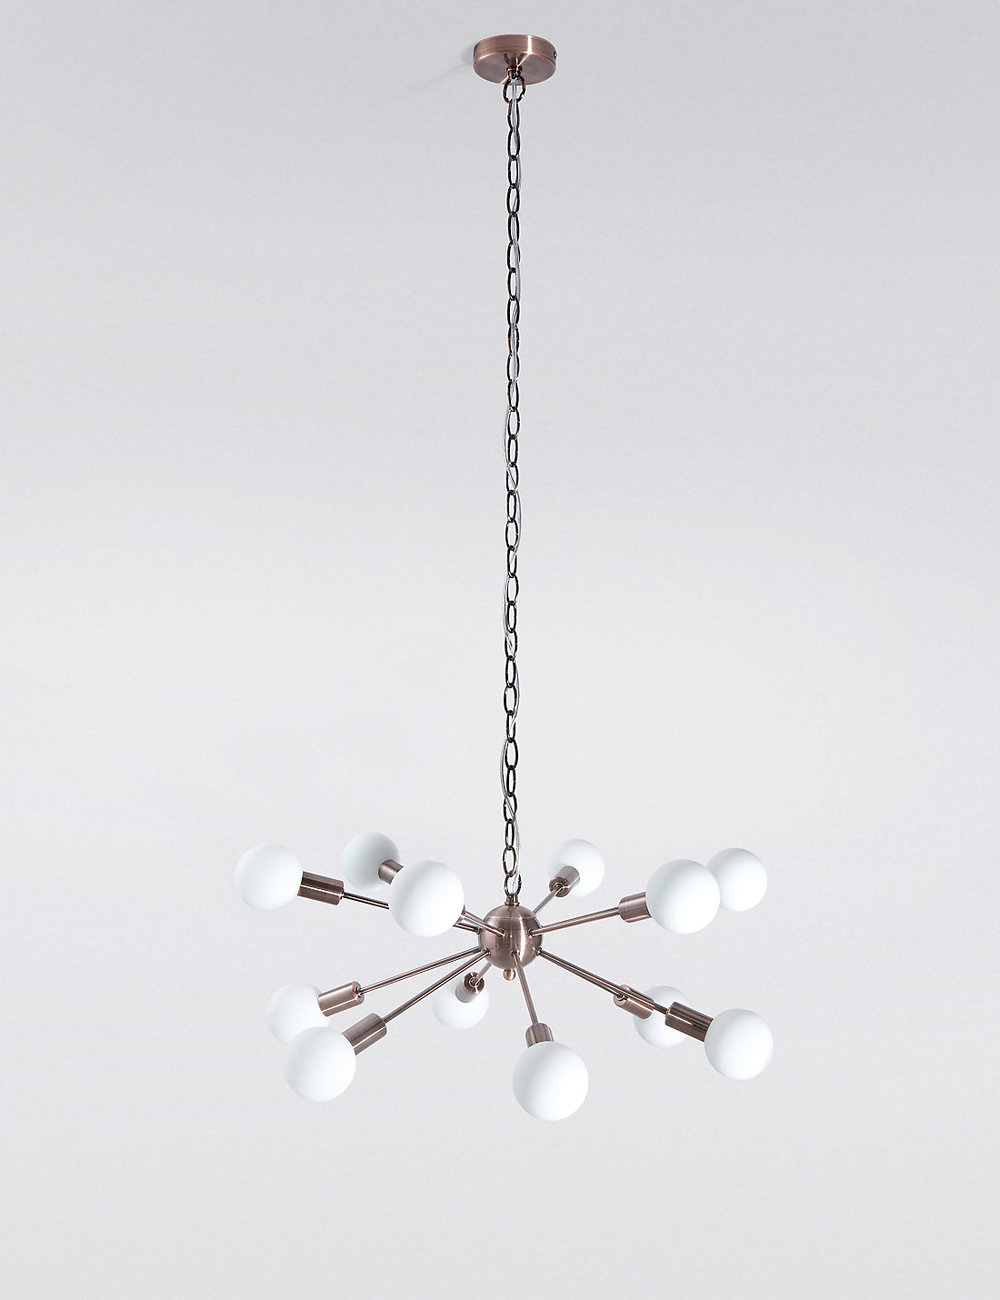 Dexter Sputnik copper style chandelier £179 Marks and Spencer